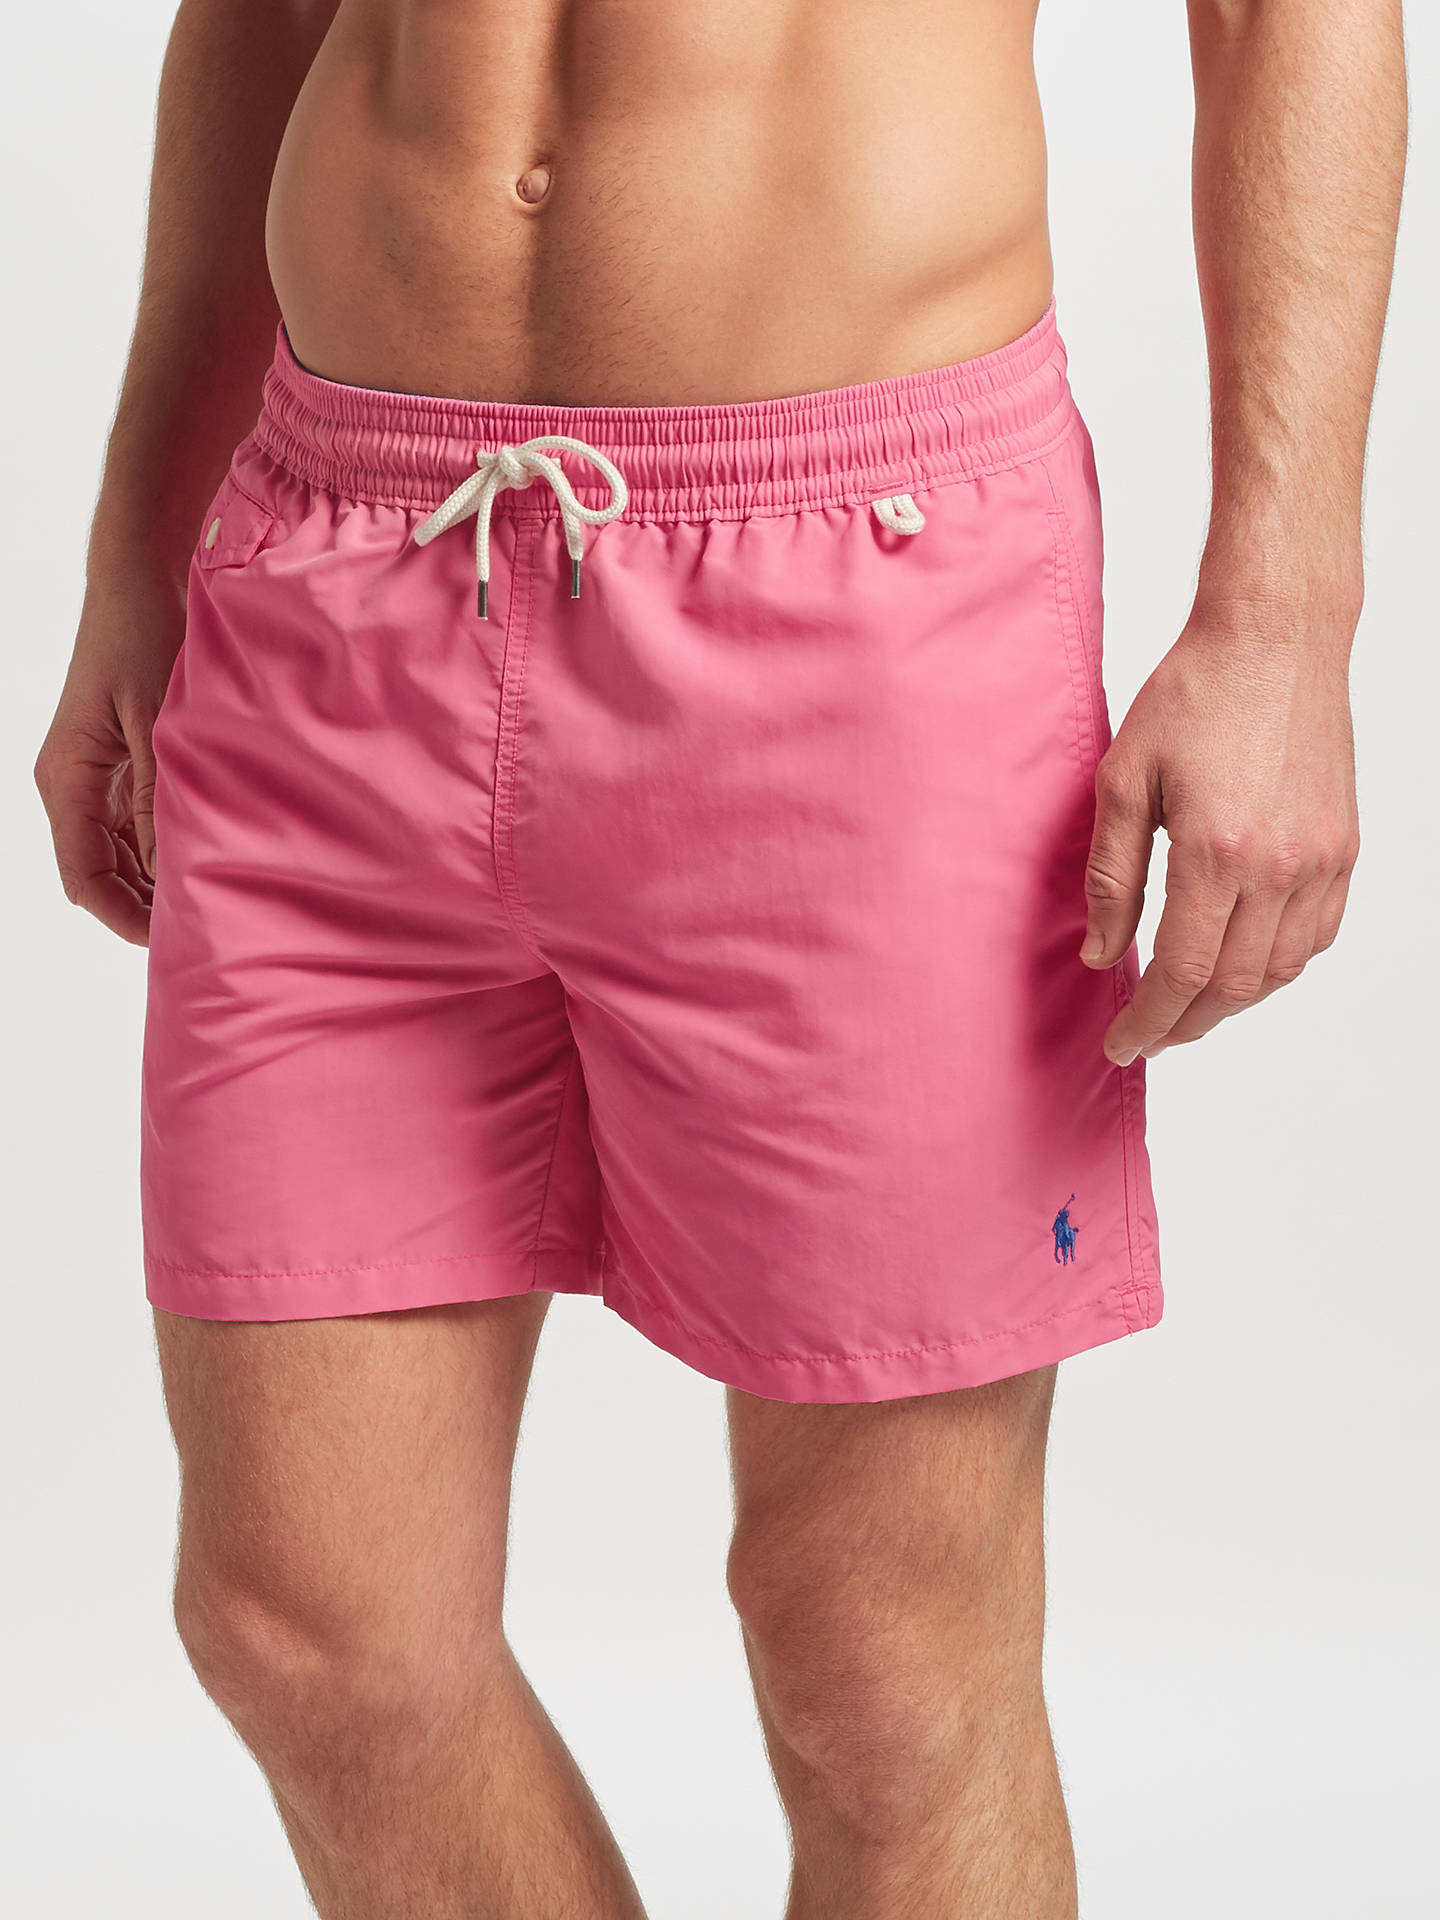 00e65b1982 Buy Polo Ralph Lauren Traveller Swim Shorts, Chroma Pink, S Online at  johnlewis.